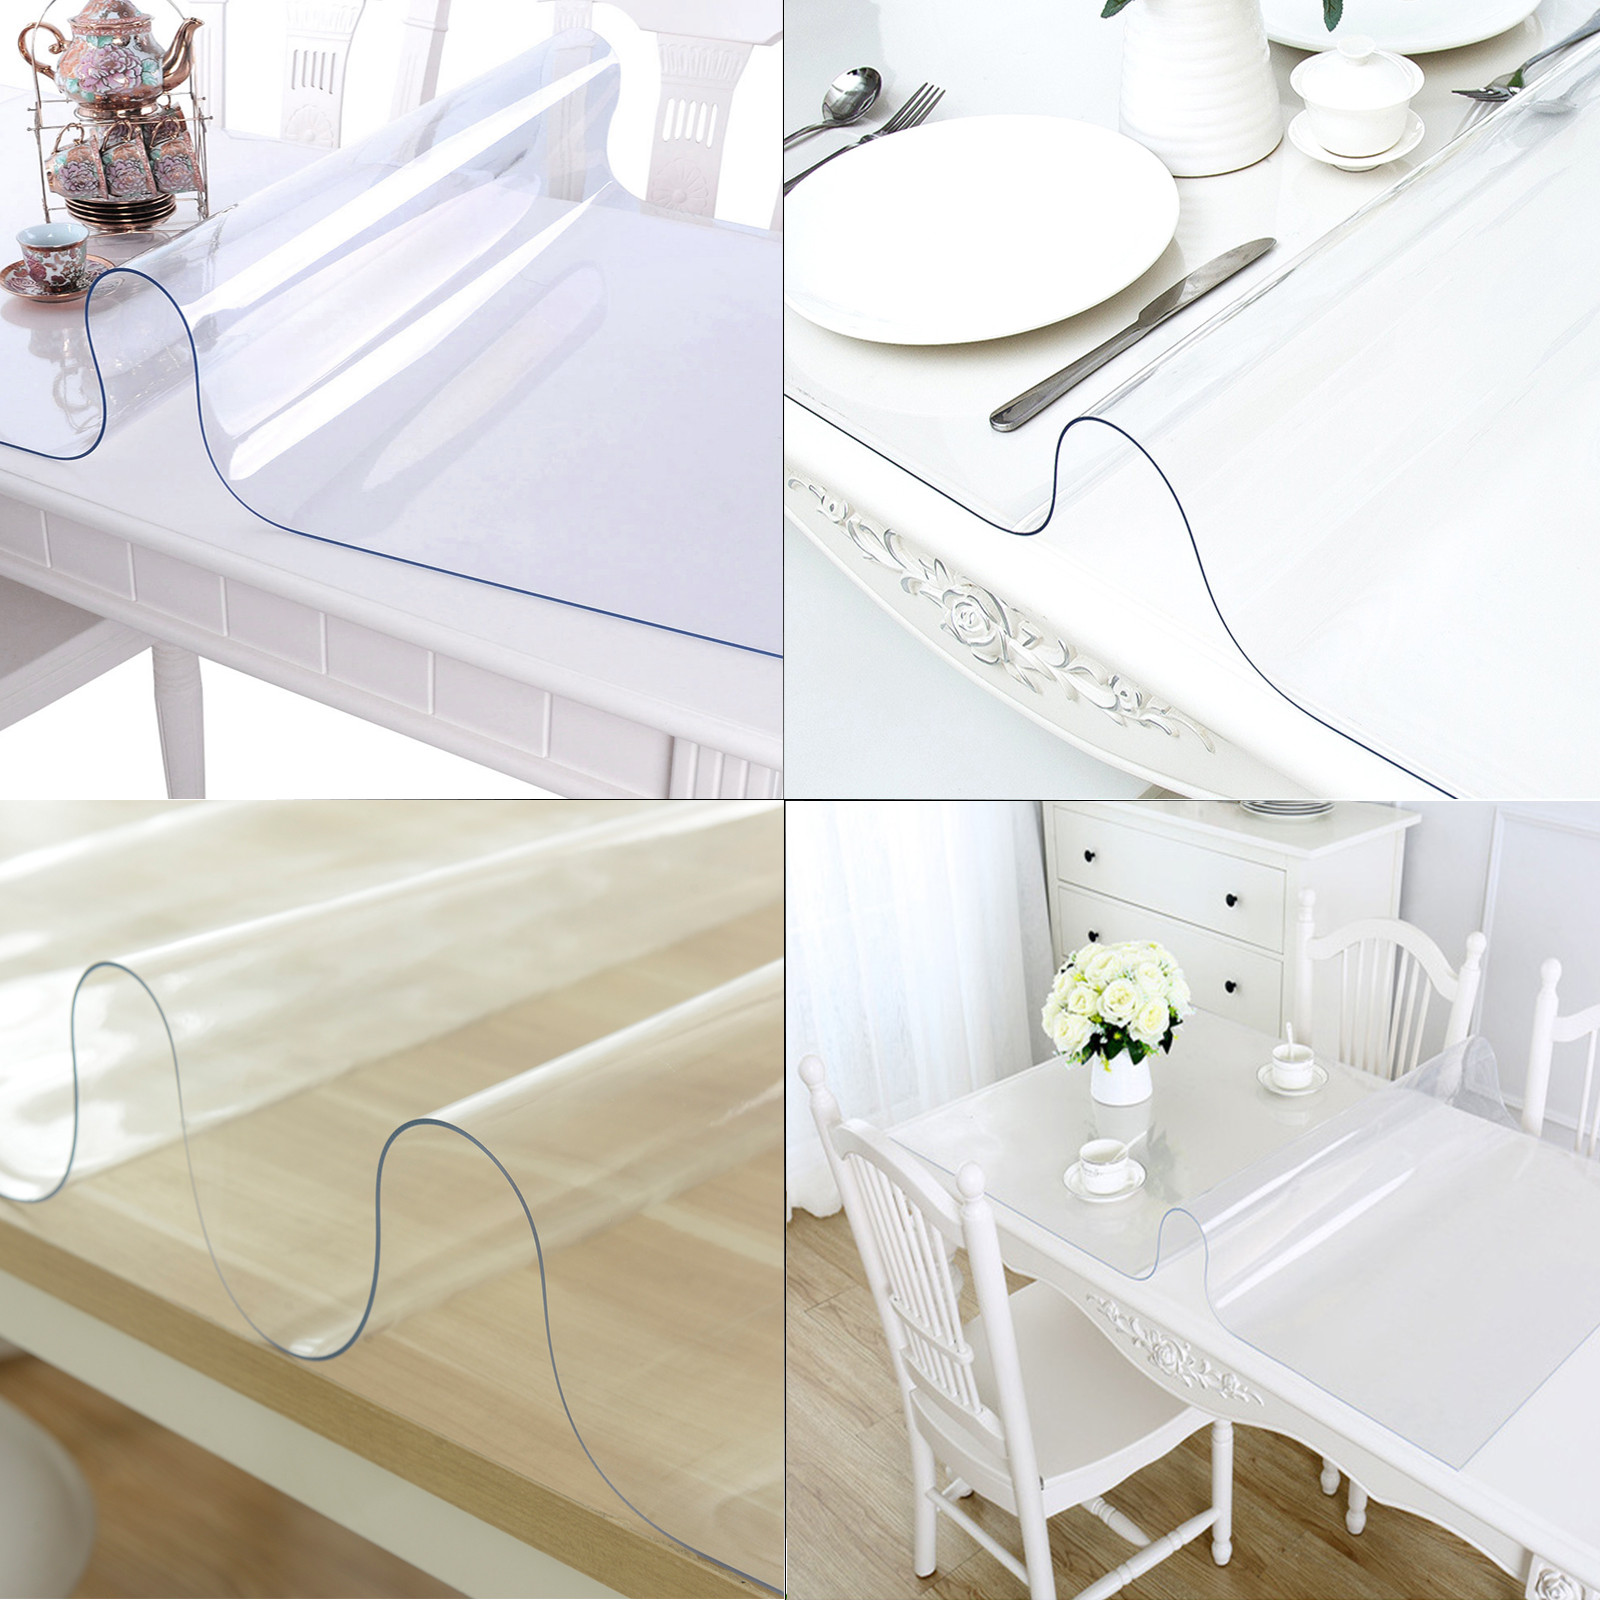 PVC Tablecloth Protector Table Cover 1.5//2mm for Glass Table Desktop Desk Pad